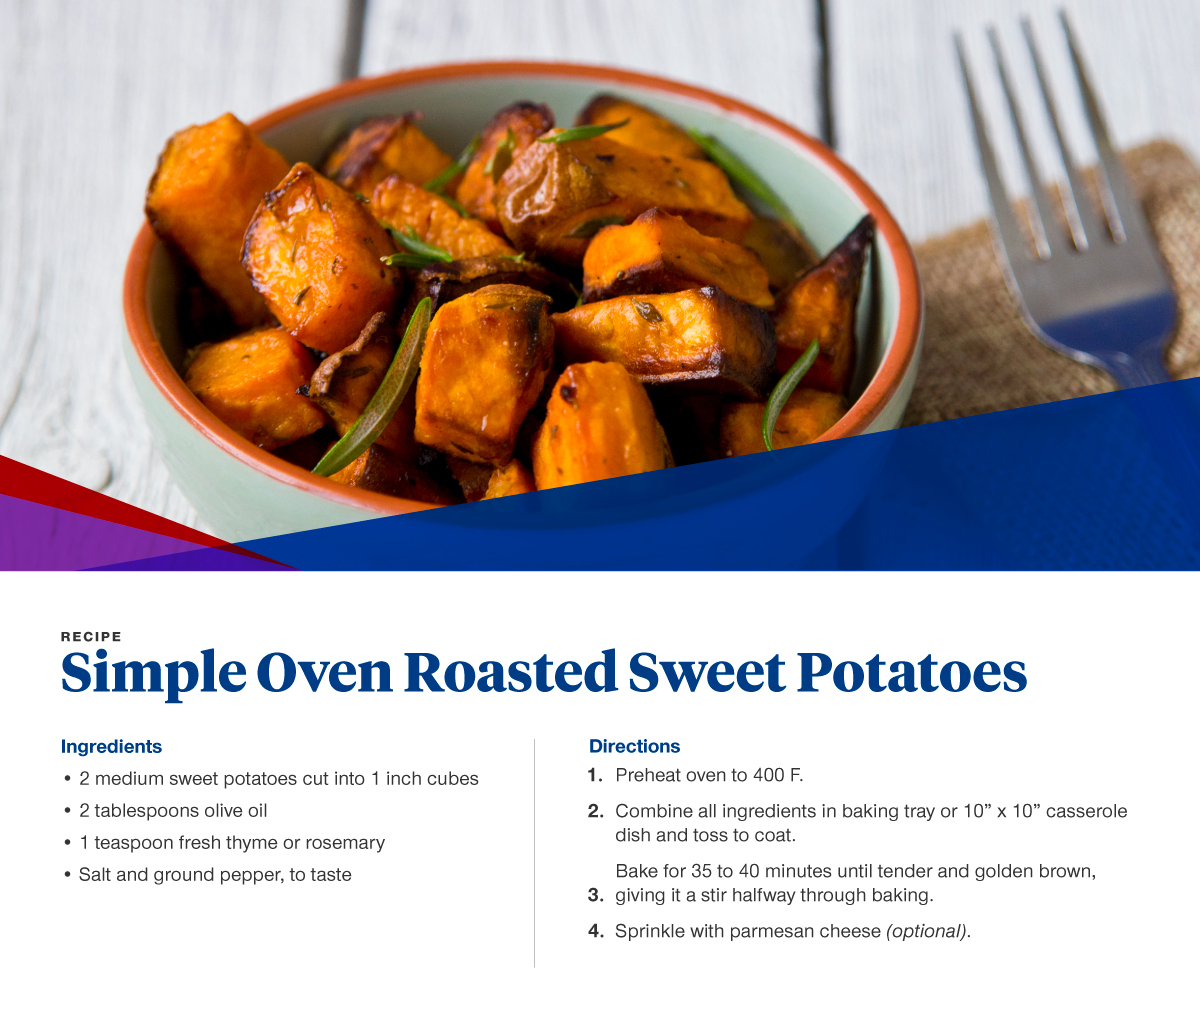 oven roasted sweet potatoes recipe card with ingredients and directions also listed below.